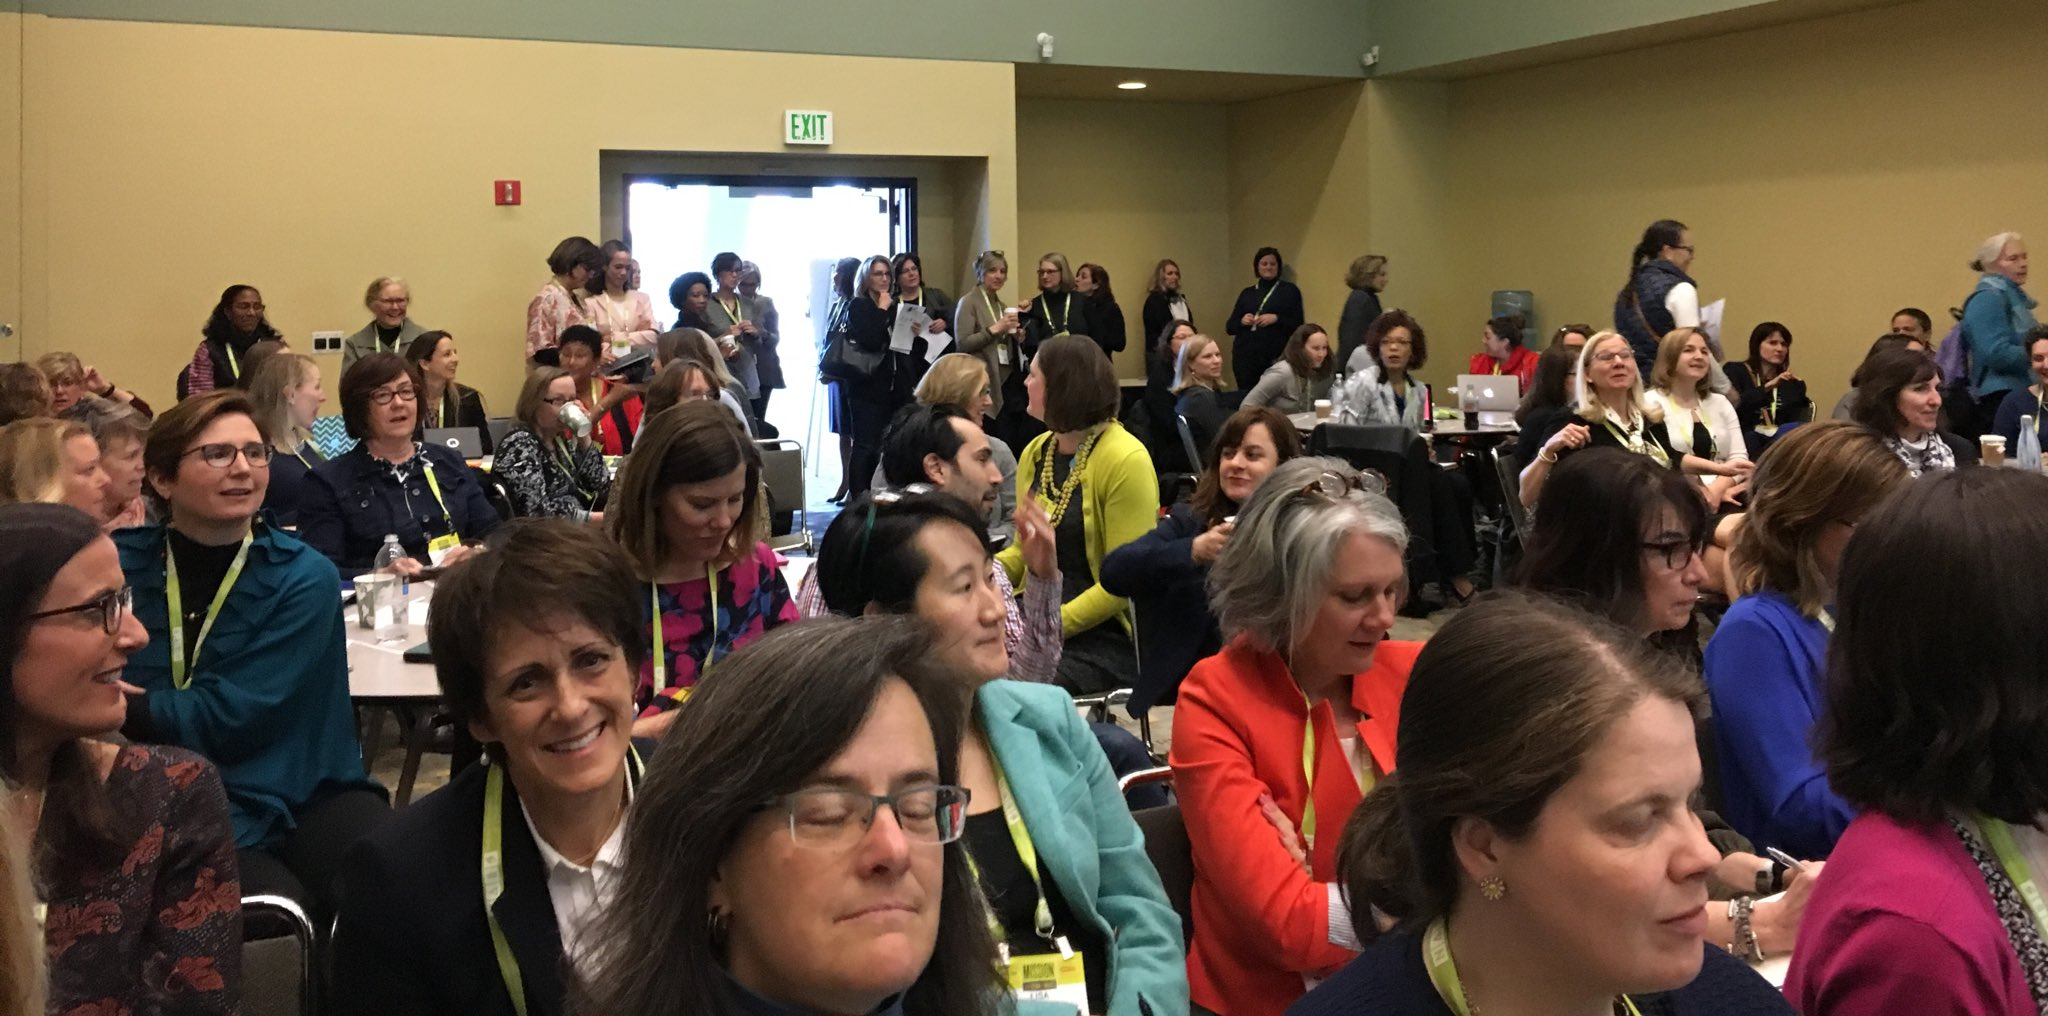 Standing room only and lots of great energy in the room! Best practices for women leaders. #naisac https://t.co/X6fK98KiEc